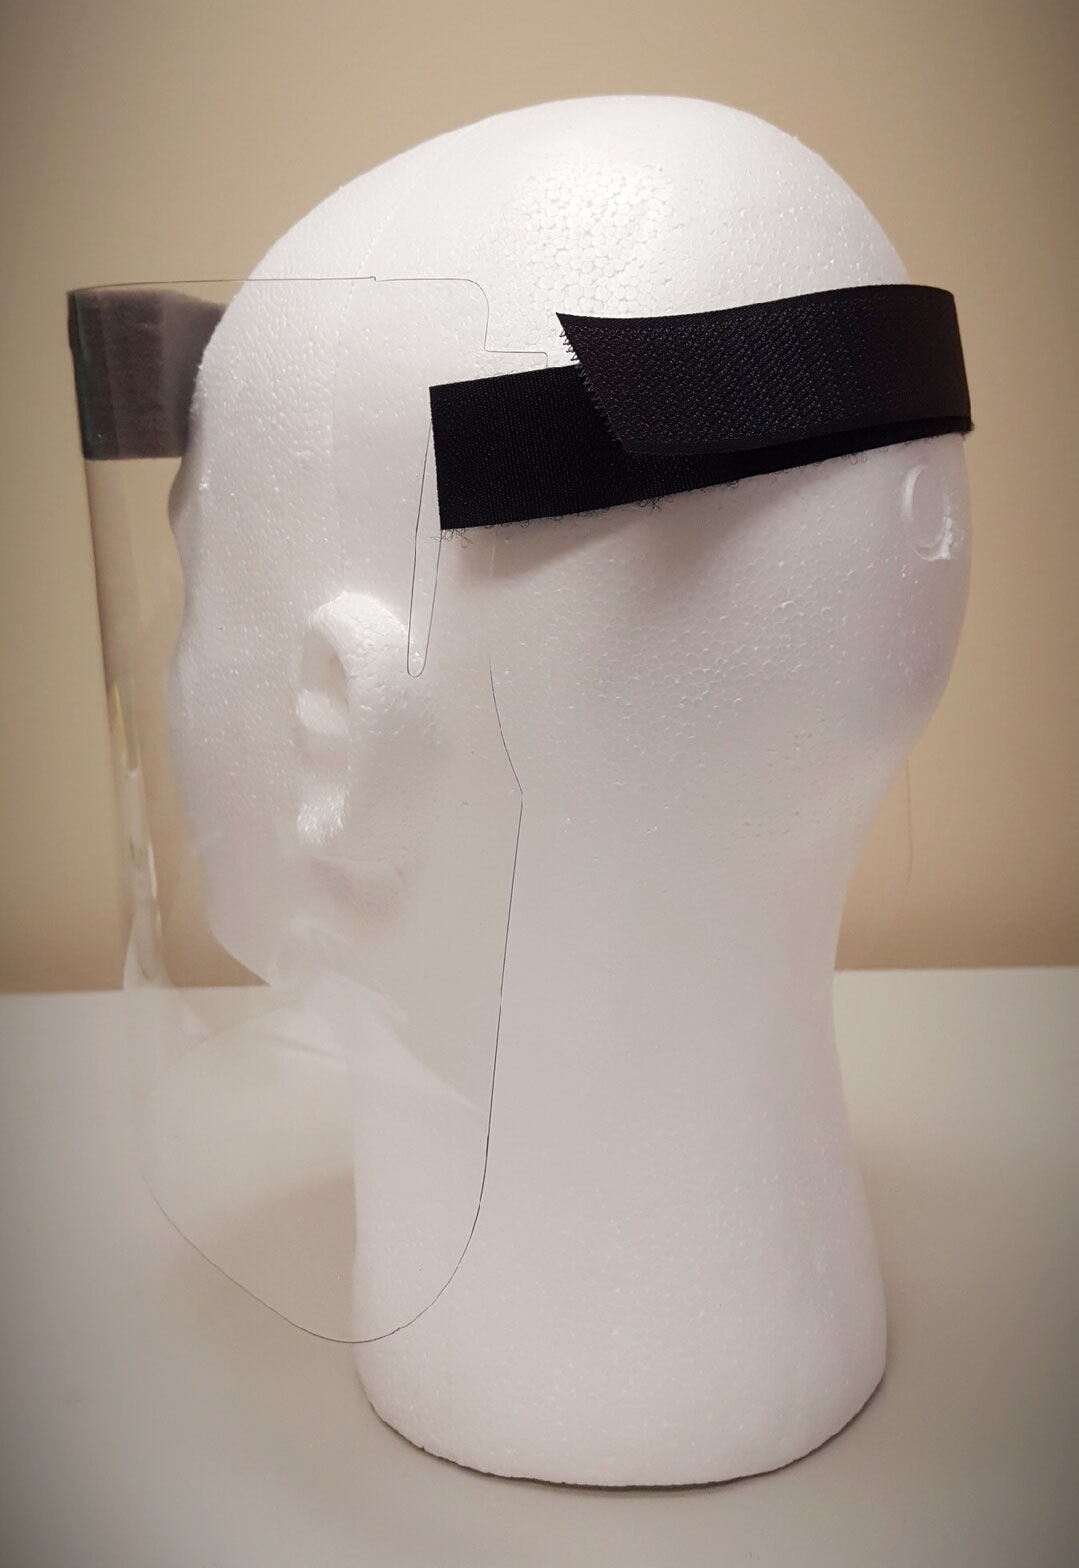 PPE Personal Protective Equipment face guard